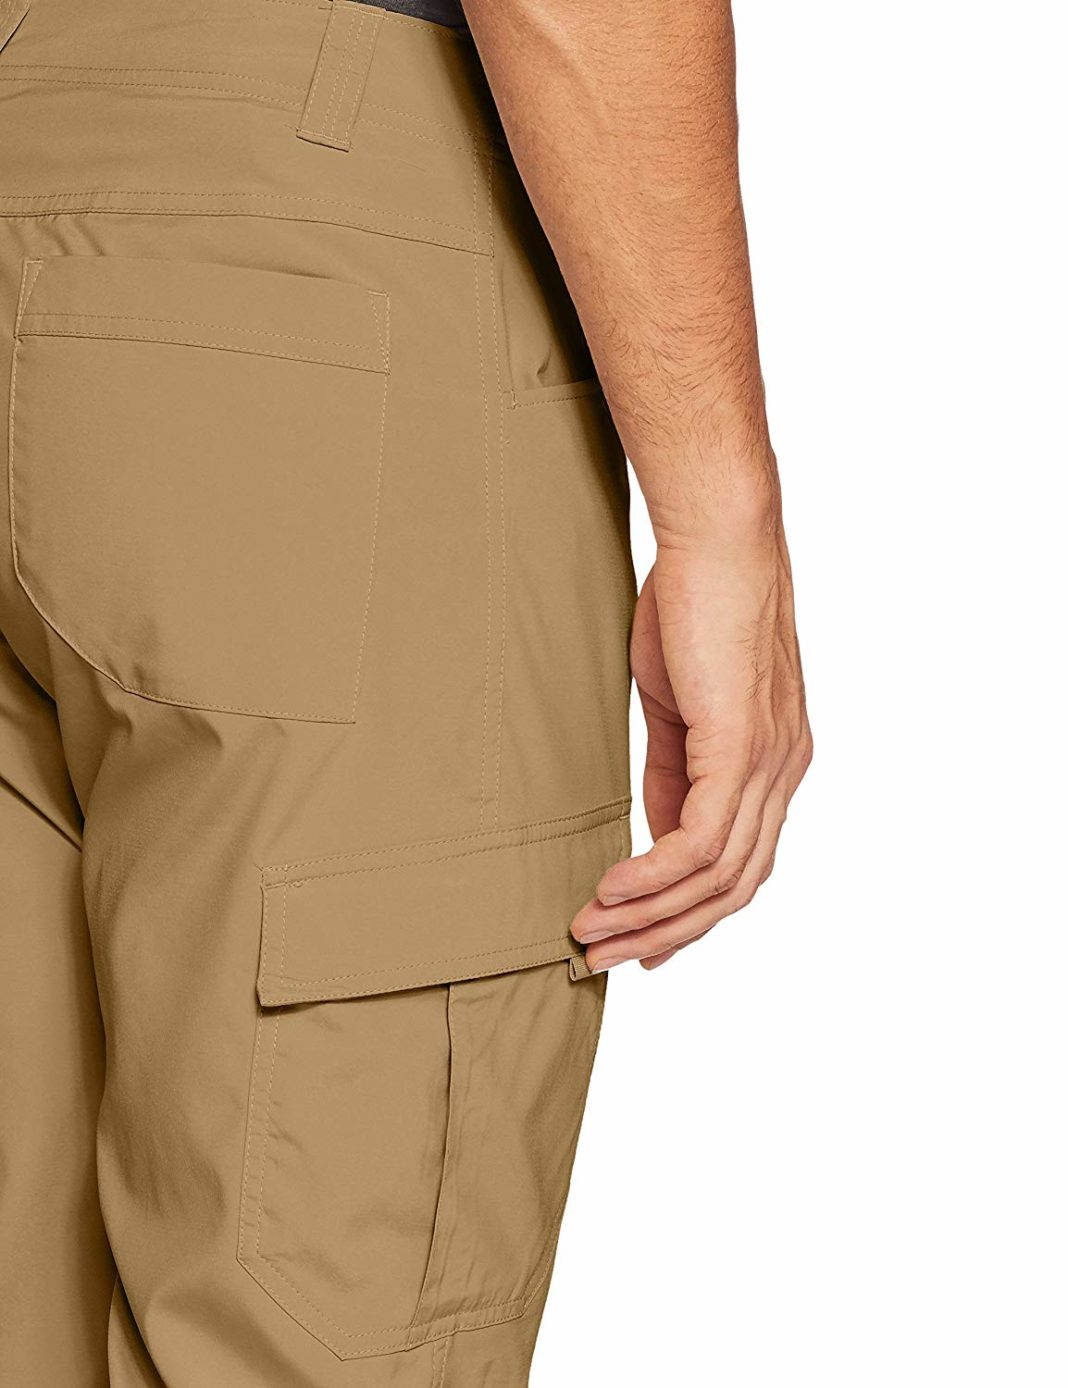 Men's Columbia Silver Ridge Stretch Pants - Storage Features